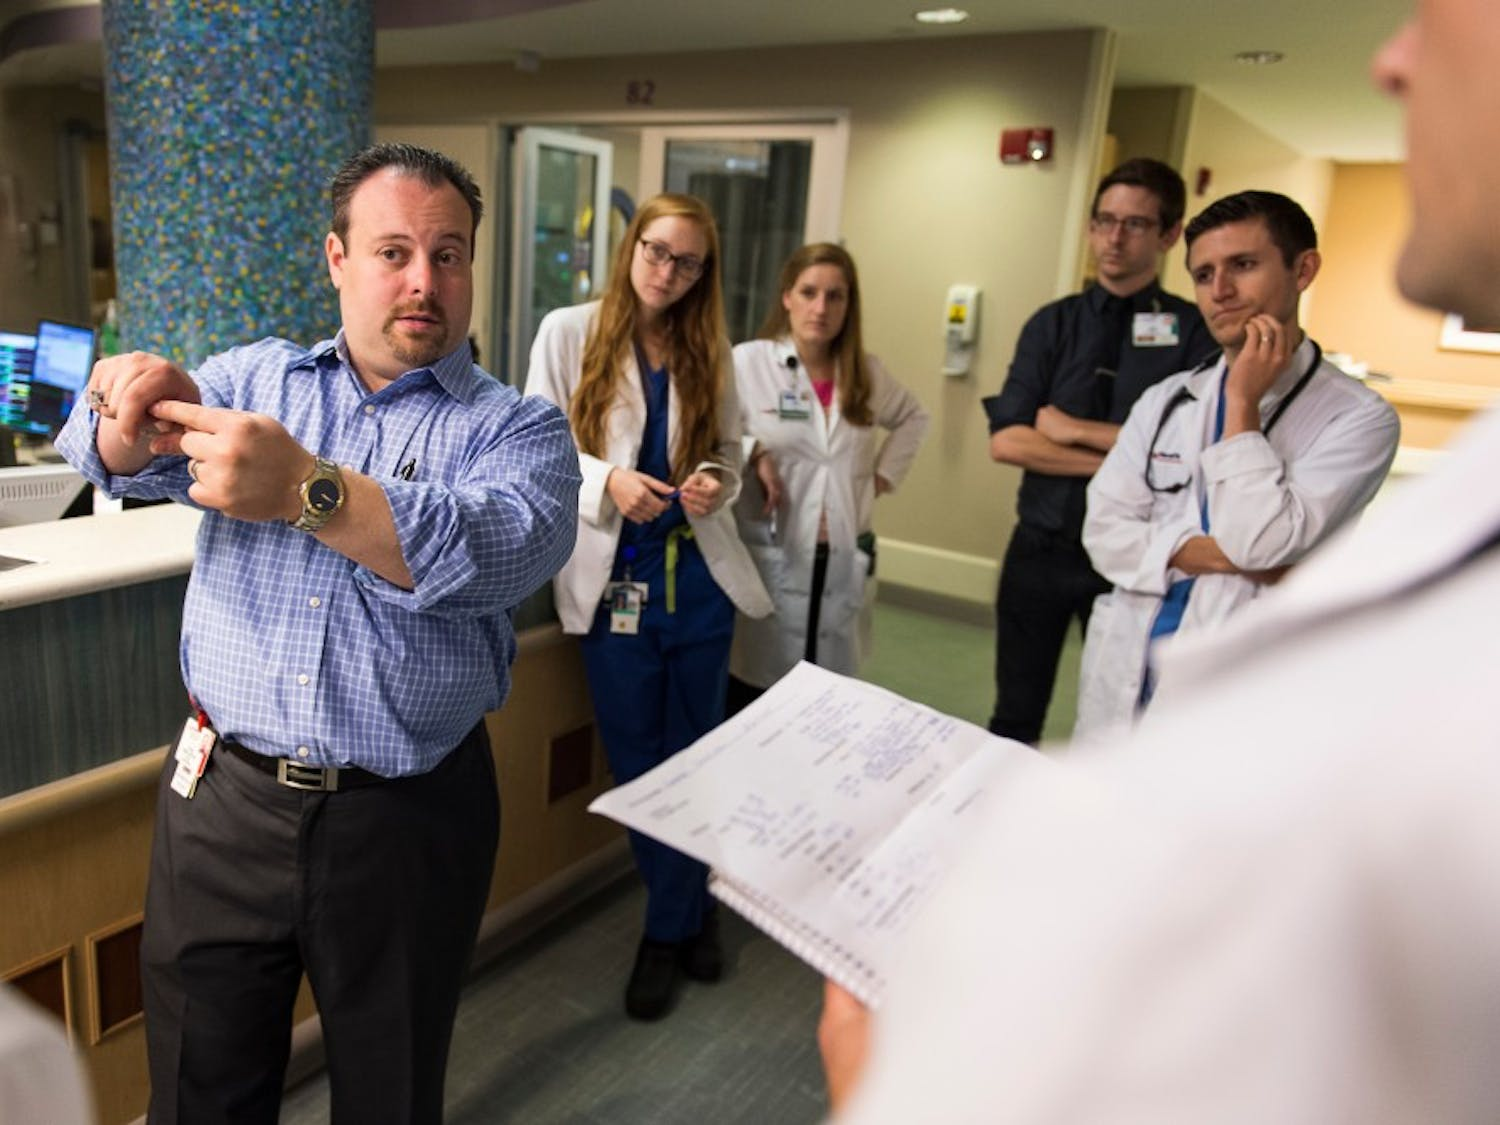 Josh Medow, left, medical director of the Neurocritical Intensive Care Unit at UW Hospital and Clinics, discusses a patient